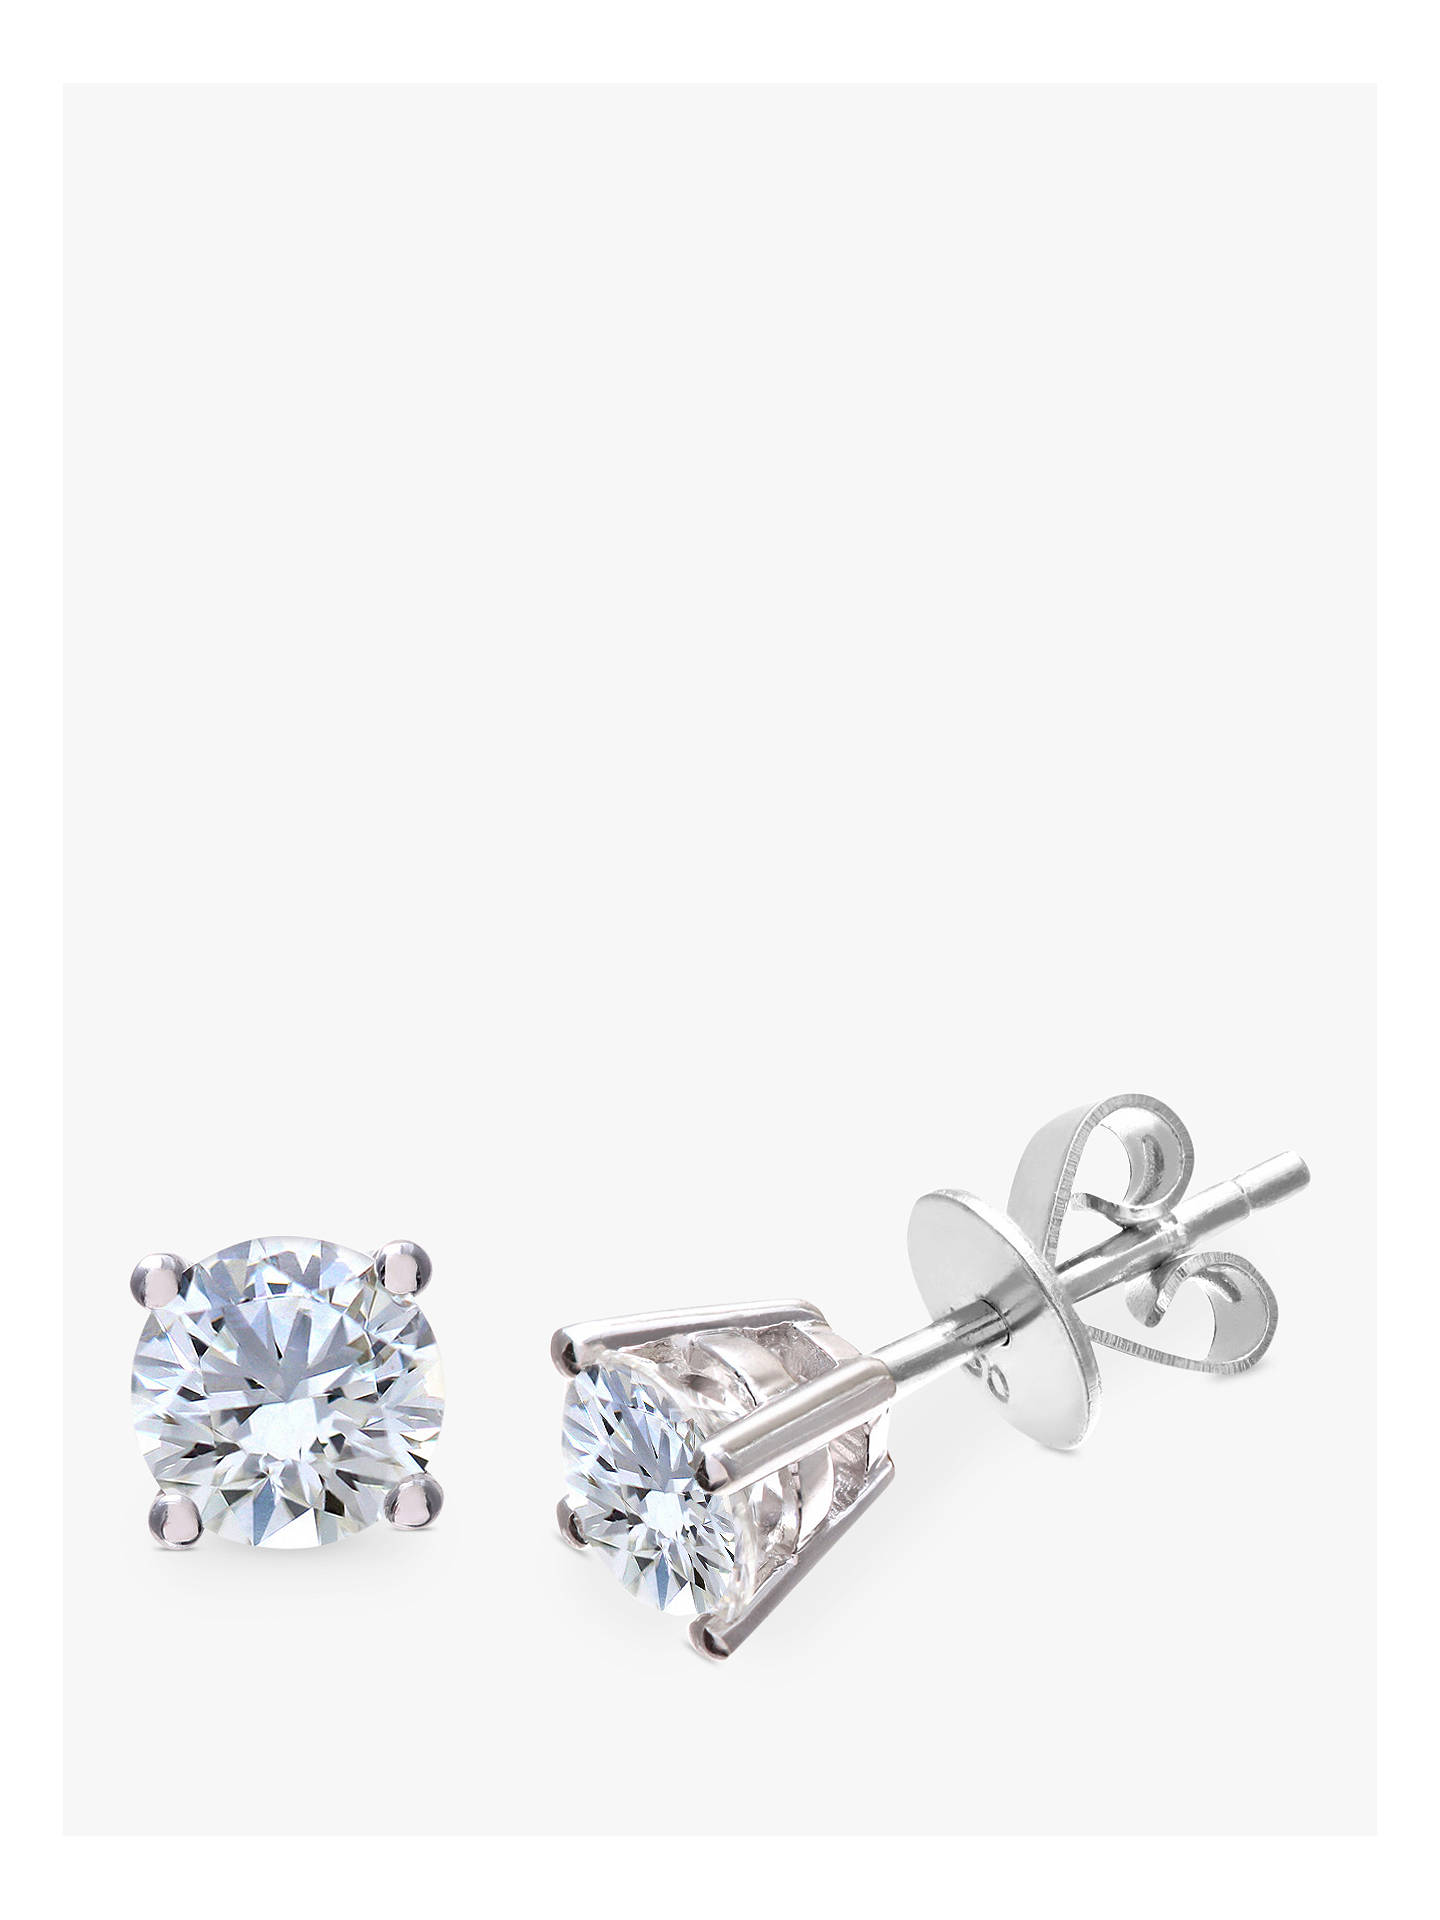 Mogul 18ct White Gold Round Brilliant Solitaire Diamond Stud Earrings 1ct Online At Johnlewis